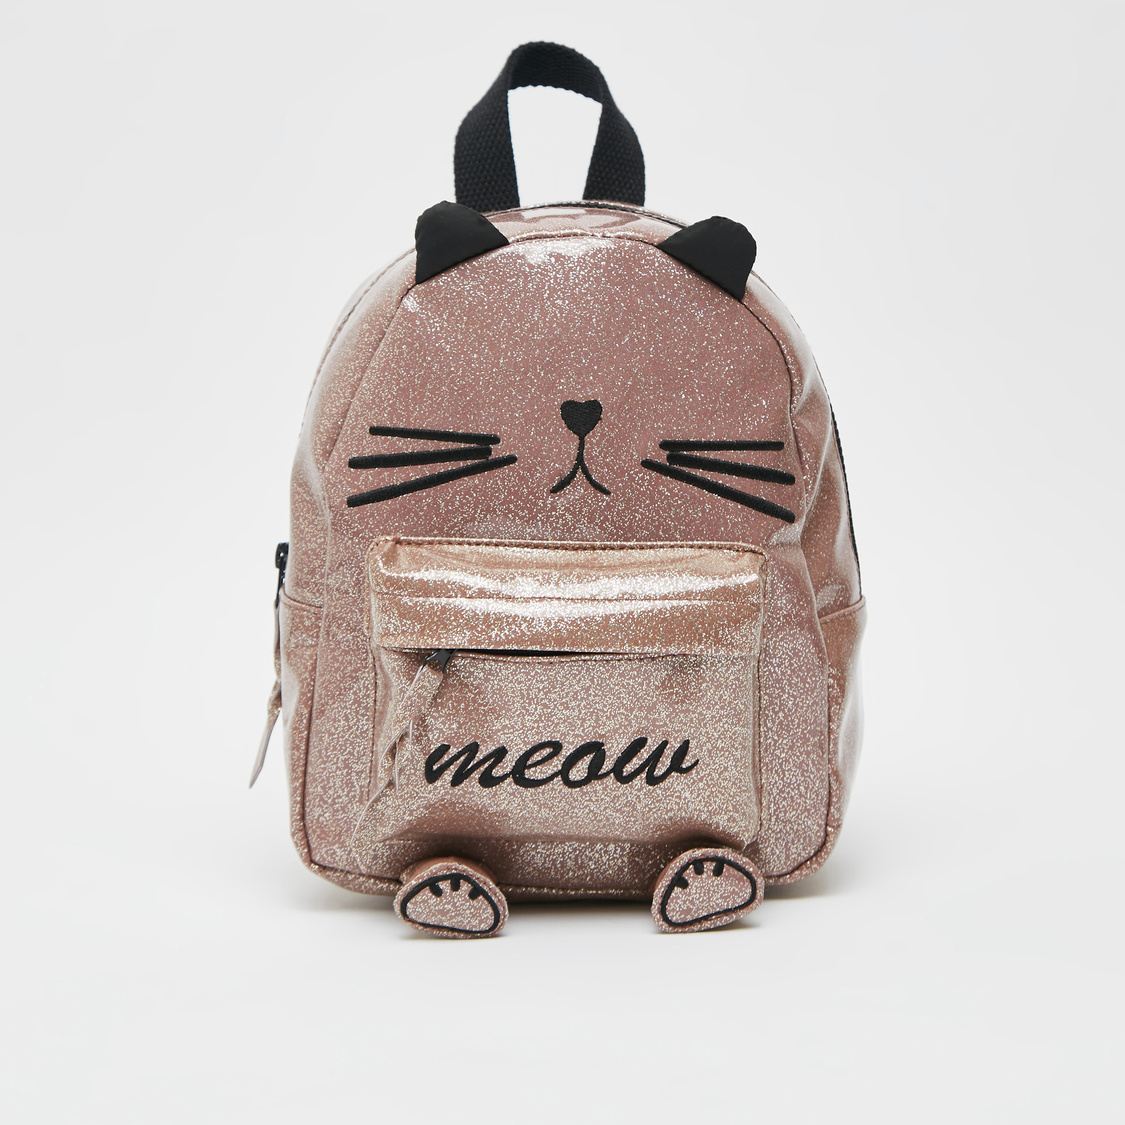 Glitter Accent Backpack with Adjustable Straps and Applique Detail